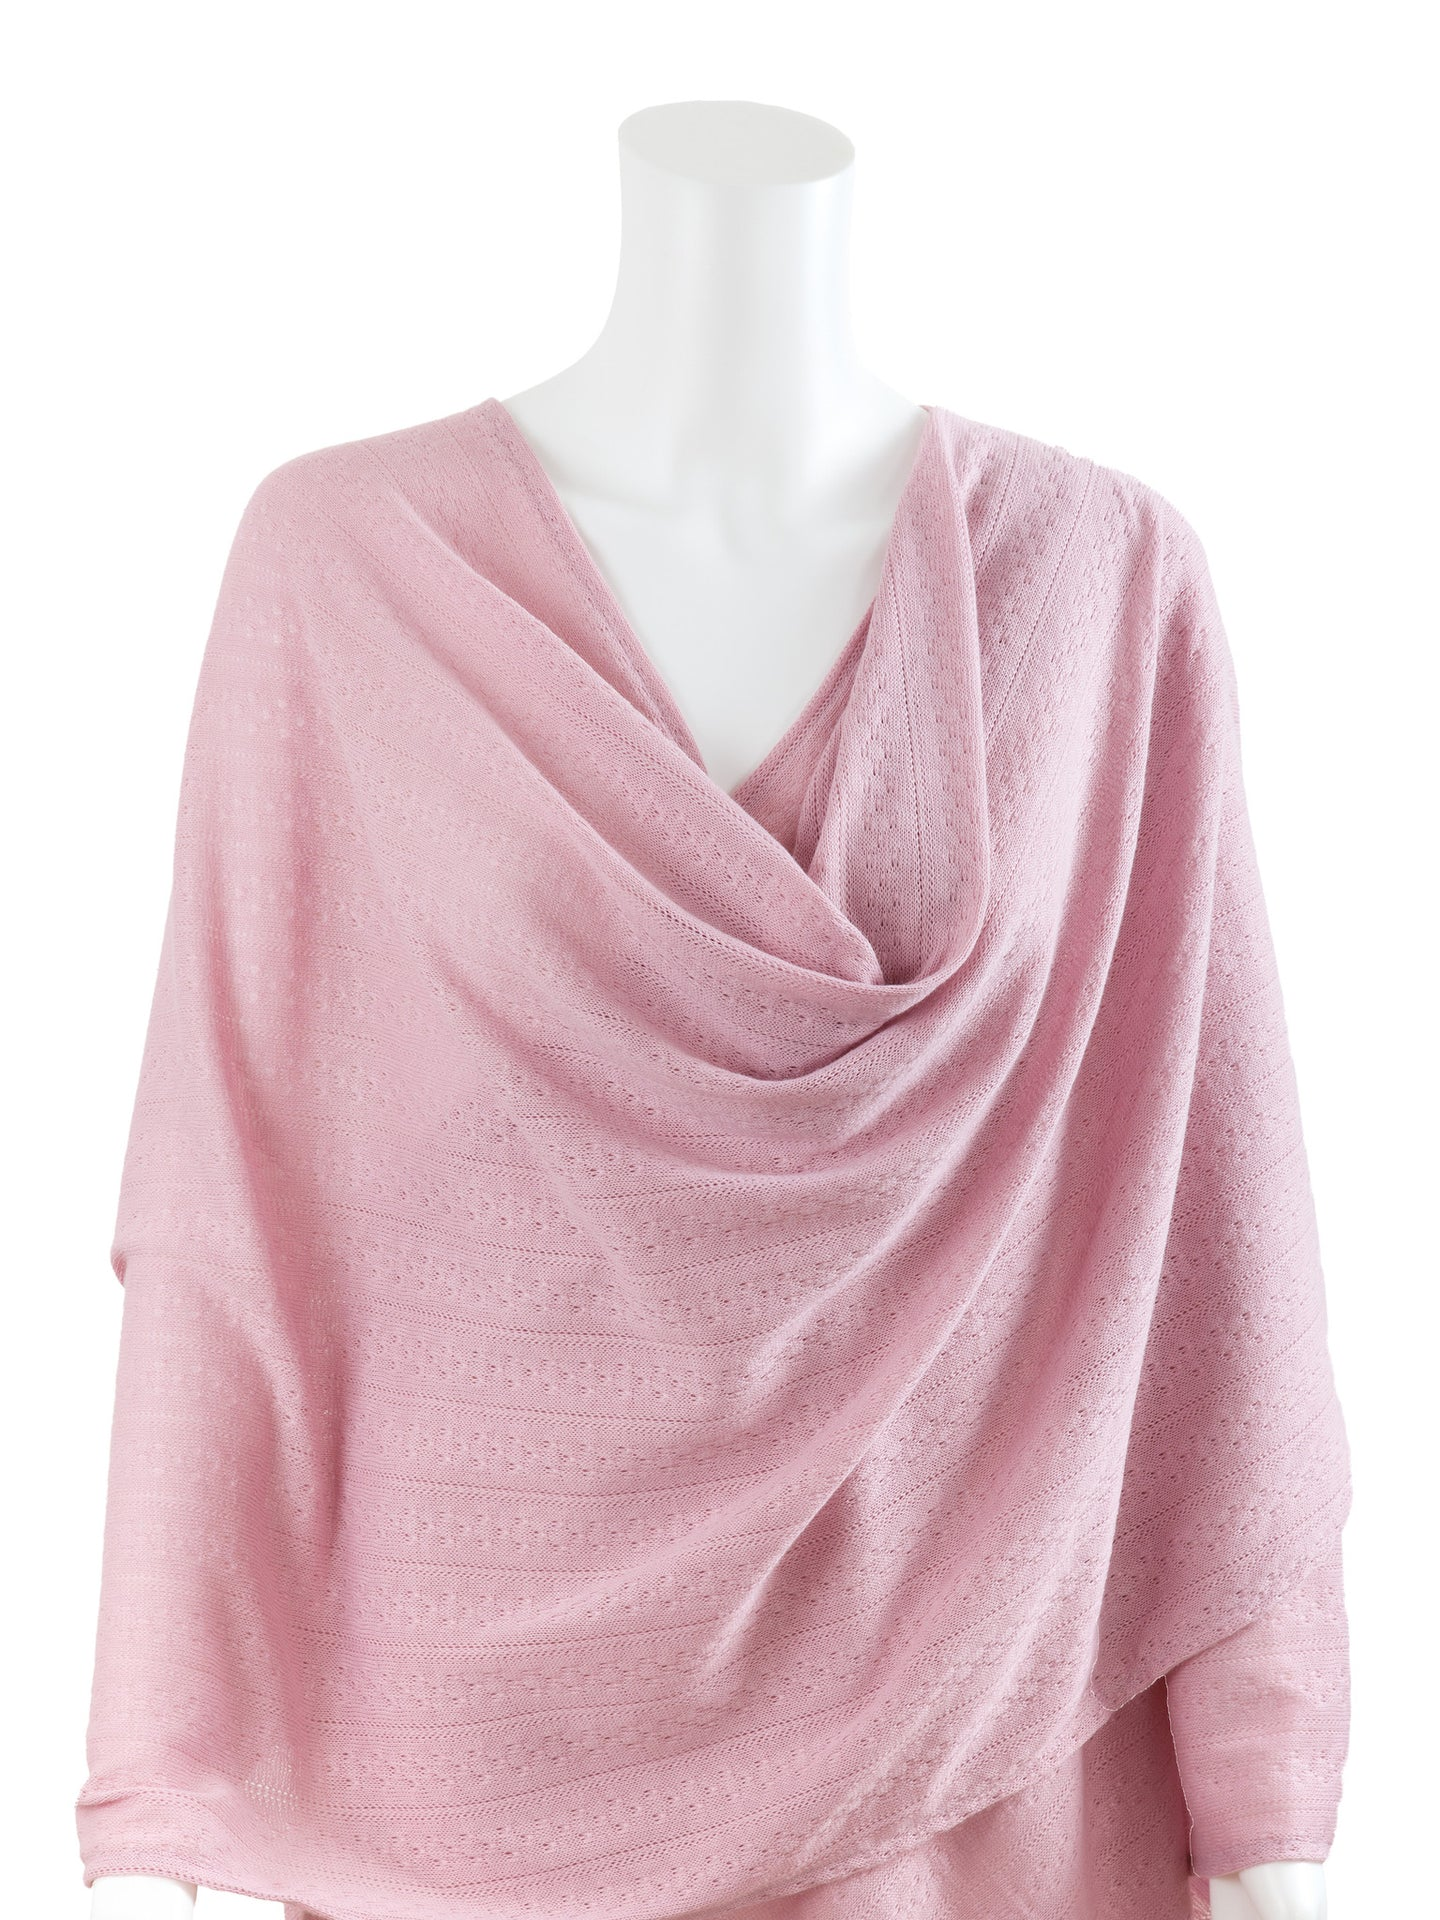 Nursing Cover - Textured Knit - Pink